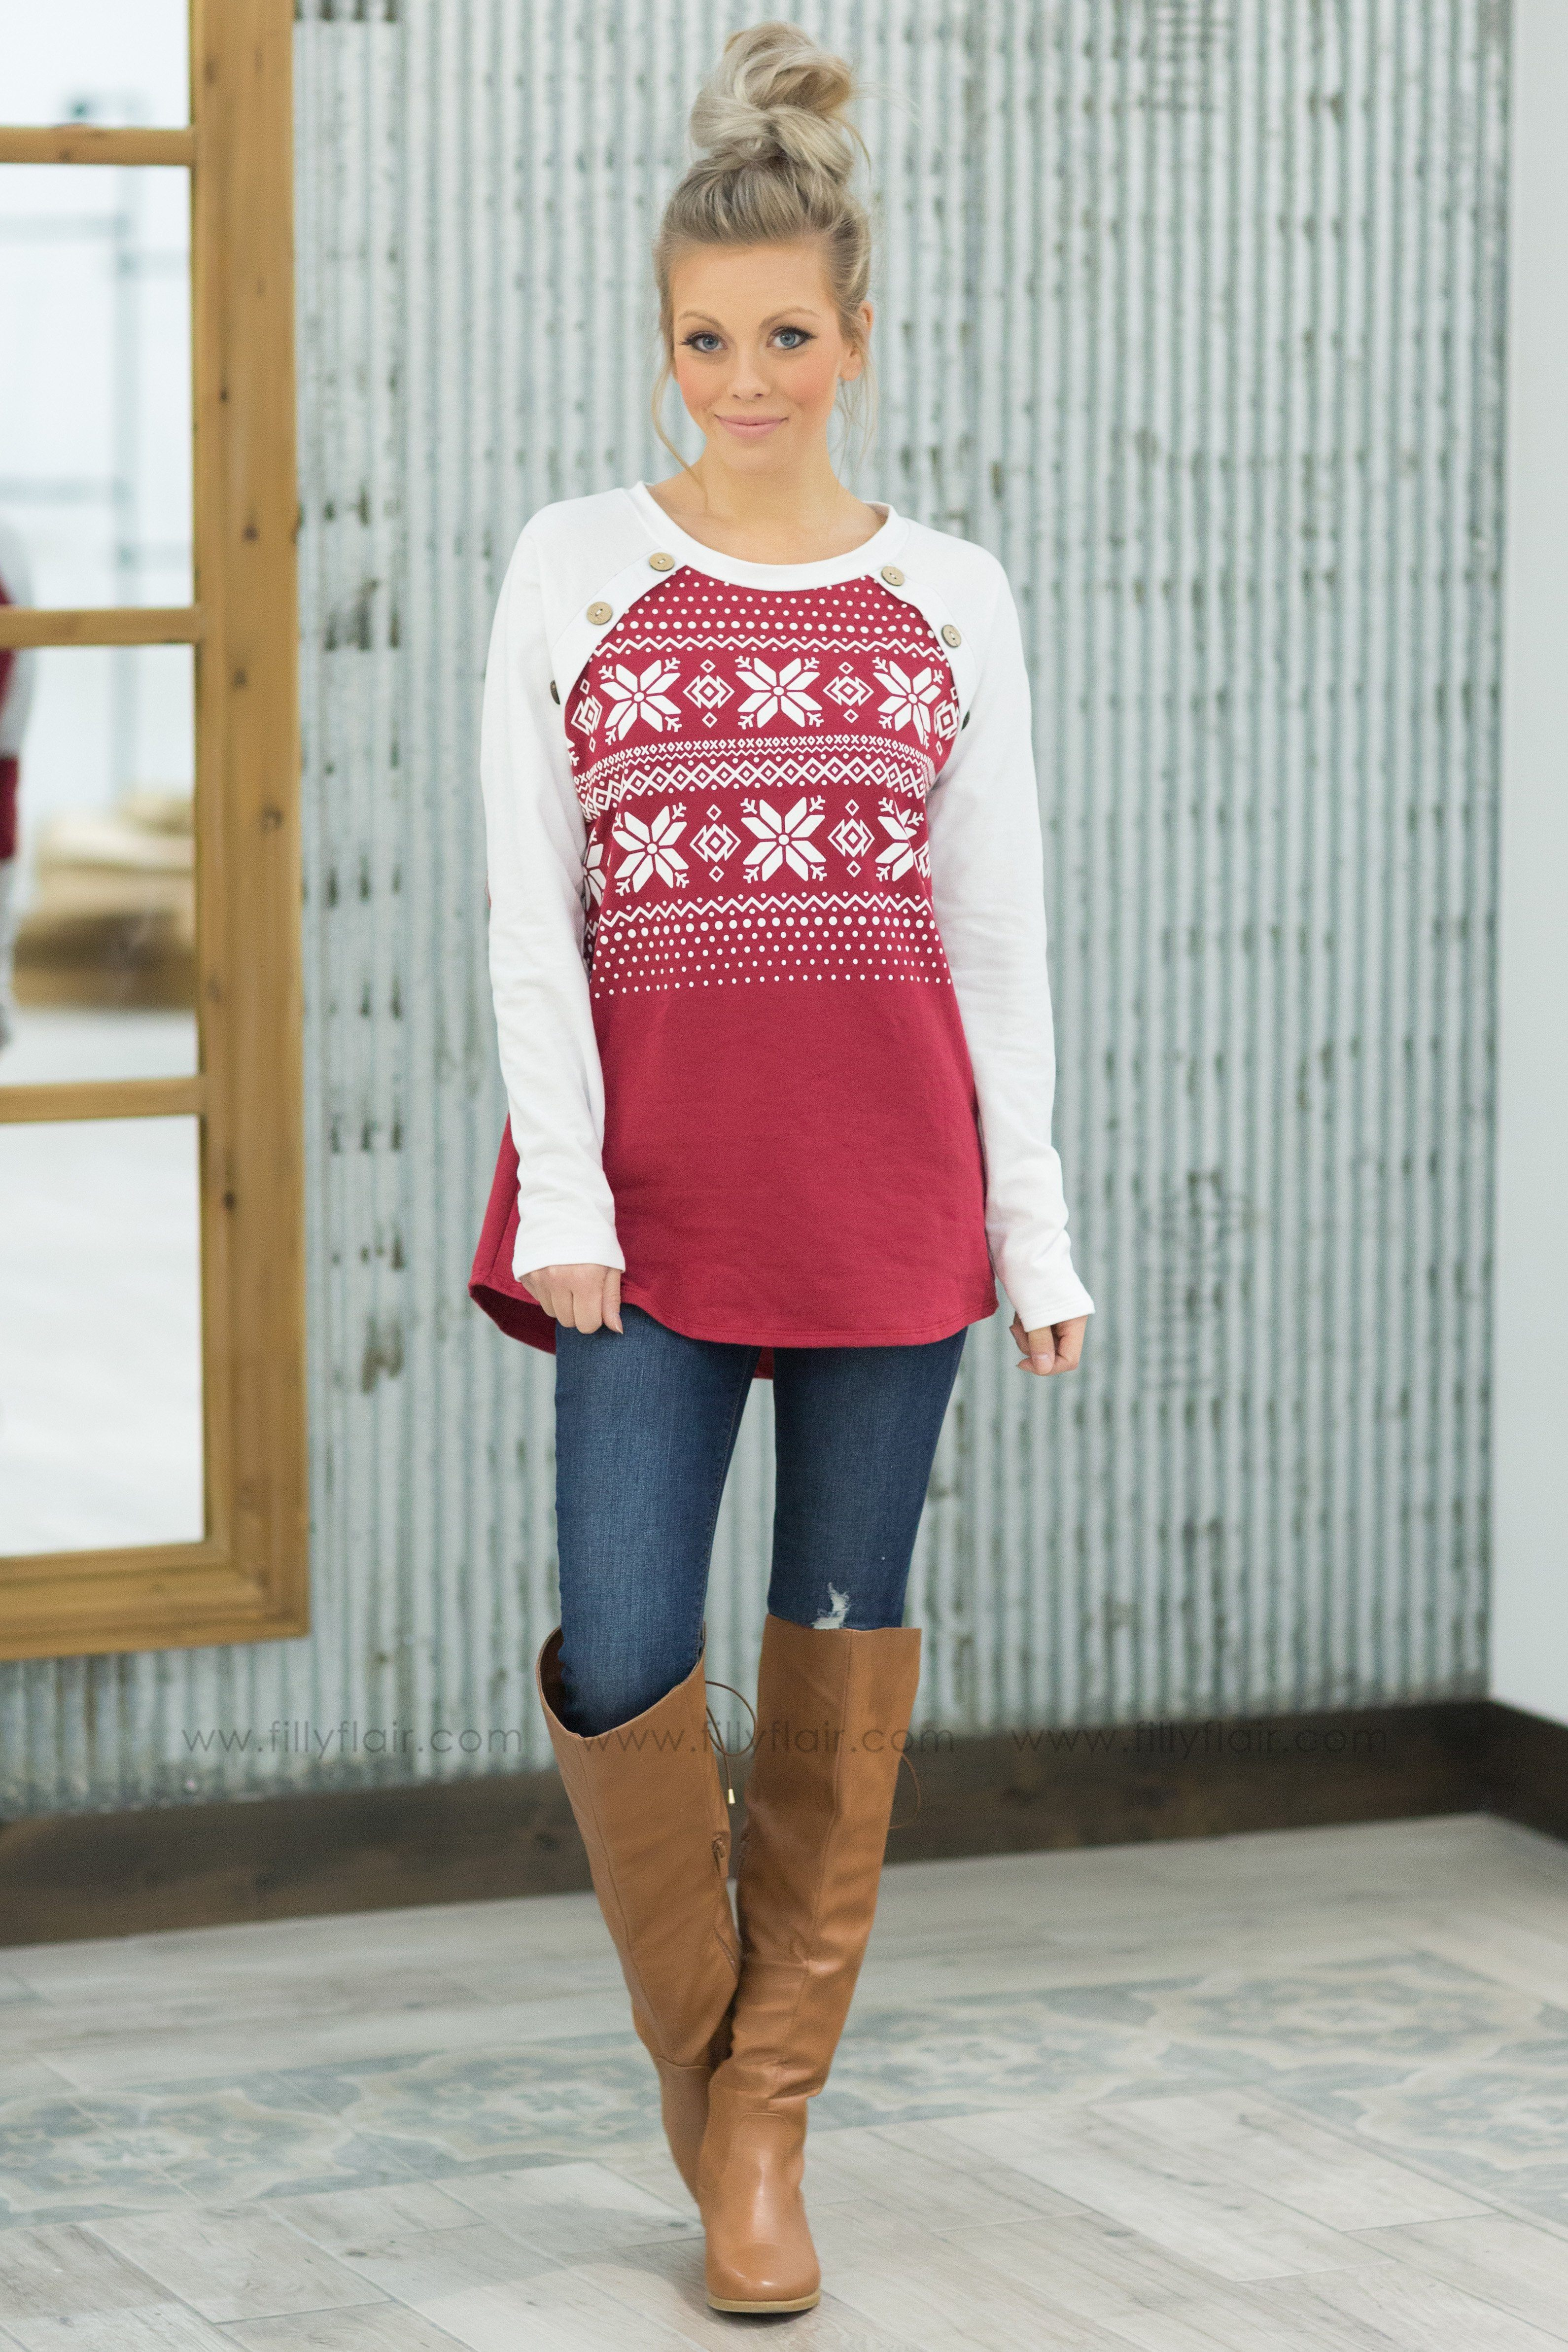 Pre-Order*In the Air Snowflake Button Detail Long Sleeve Top in Red*Ships Apx. 12.17 - Filly Flair